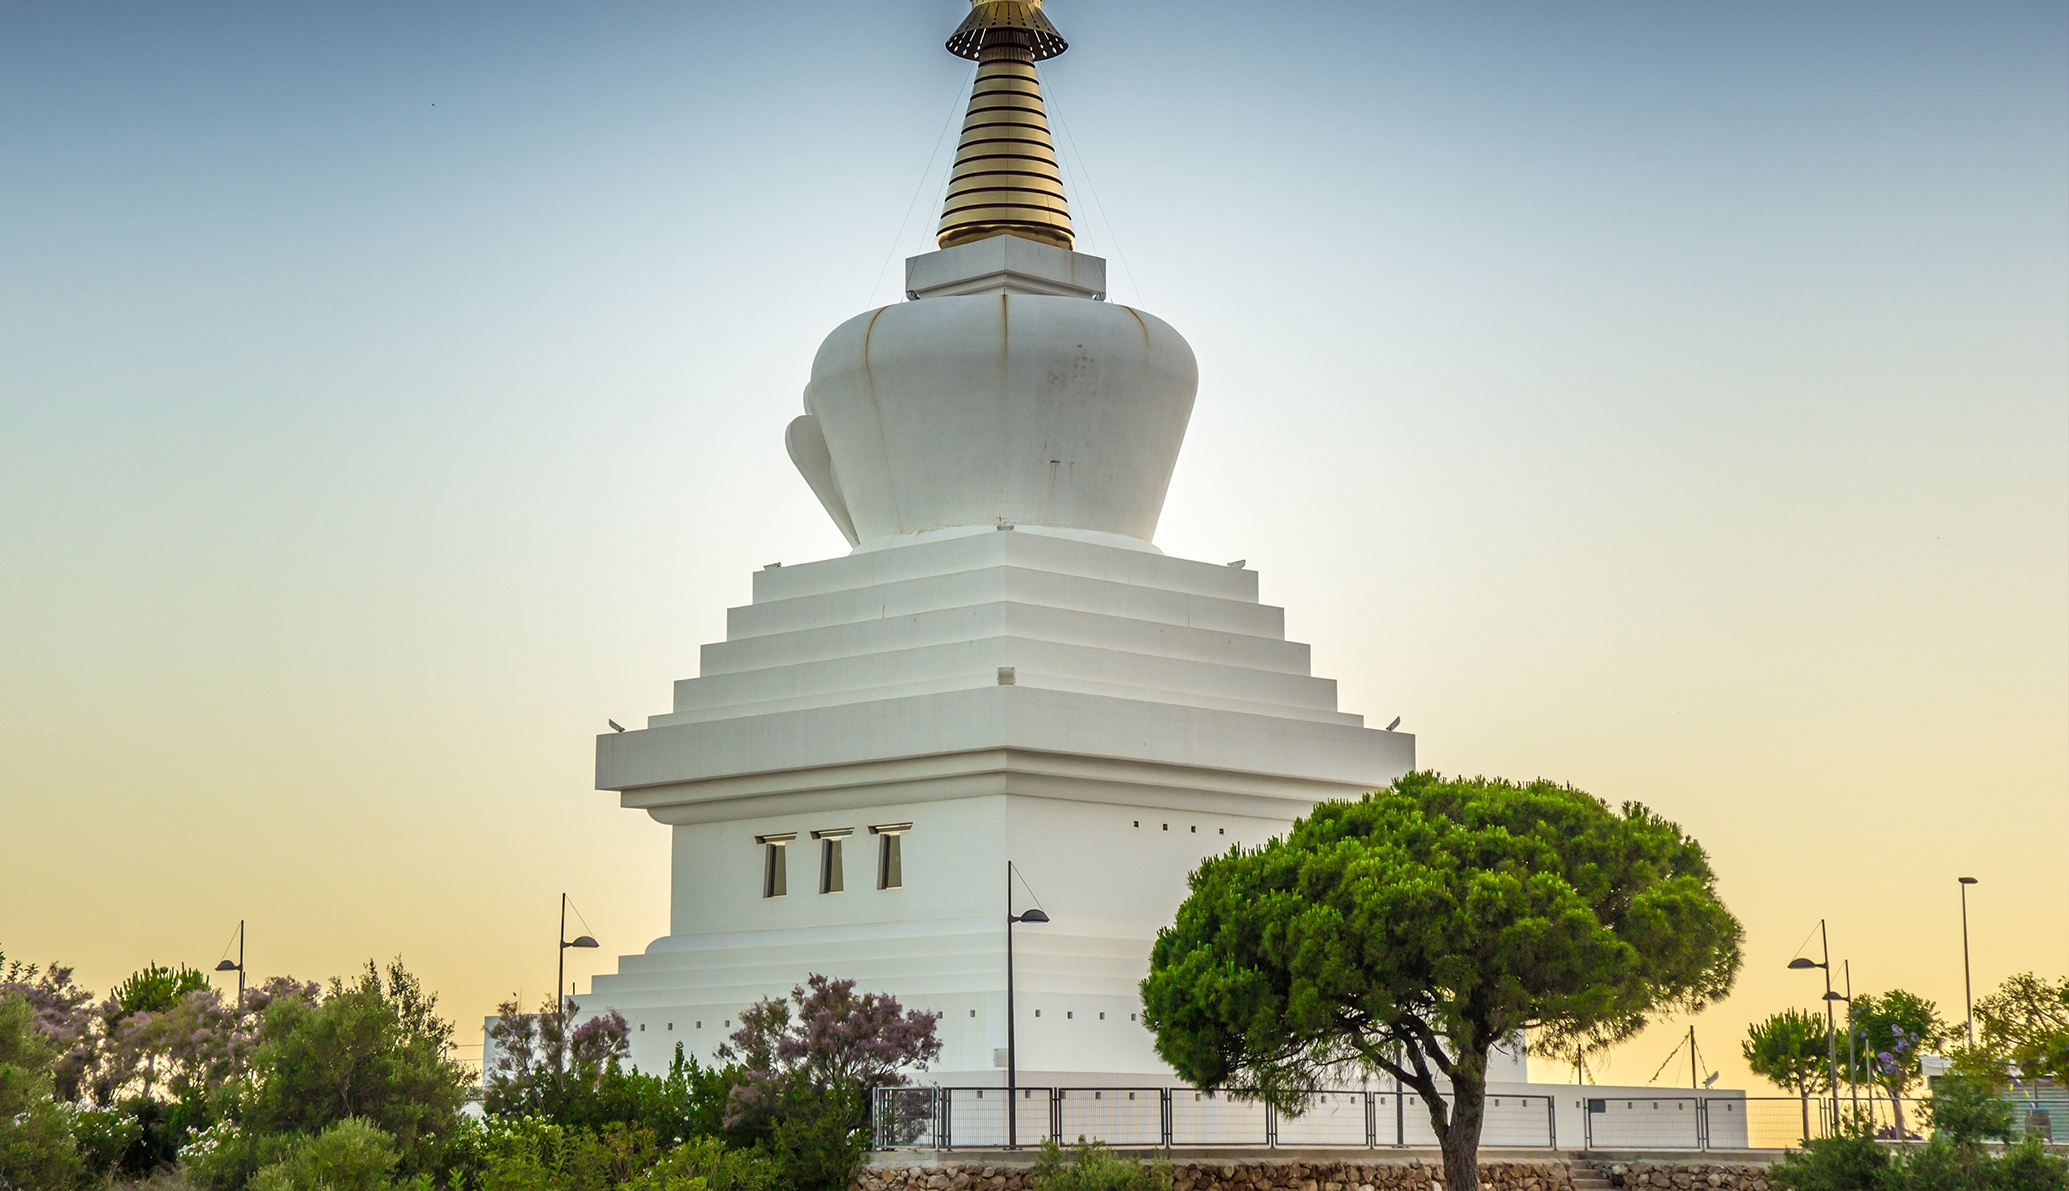 The Europe's largest Buddhist temple is in Benalmádena